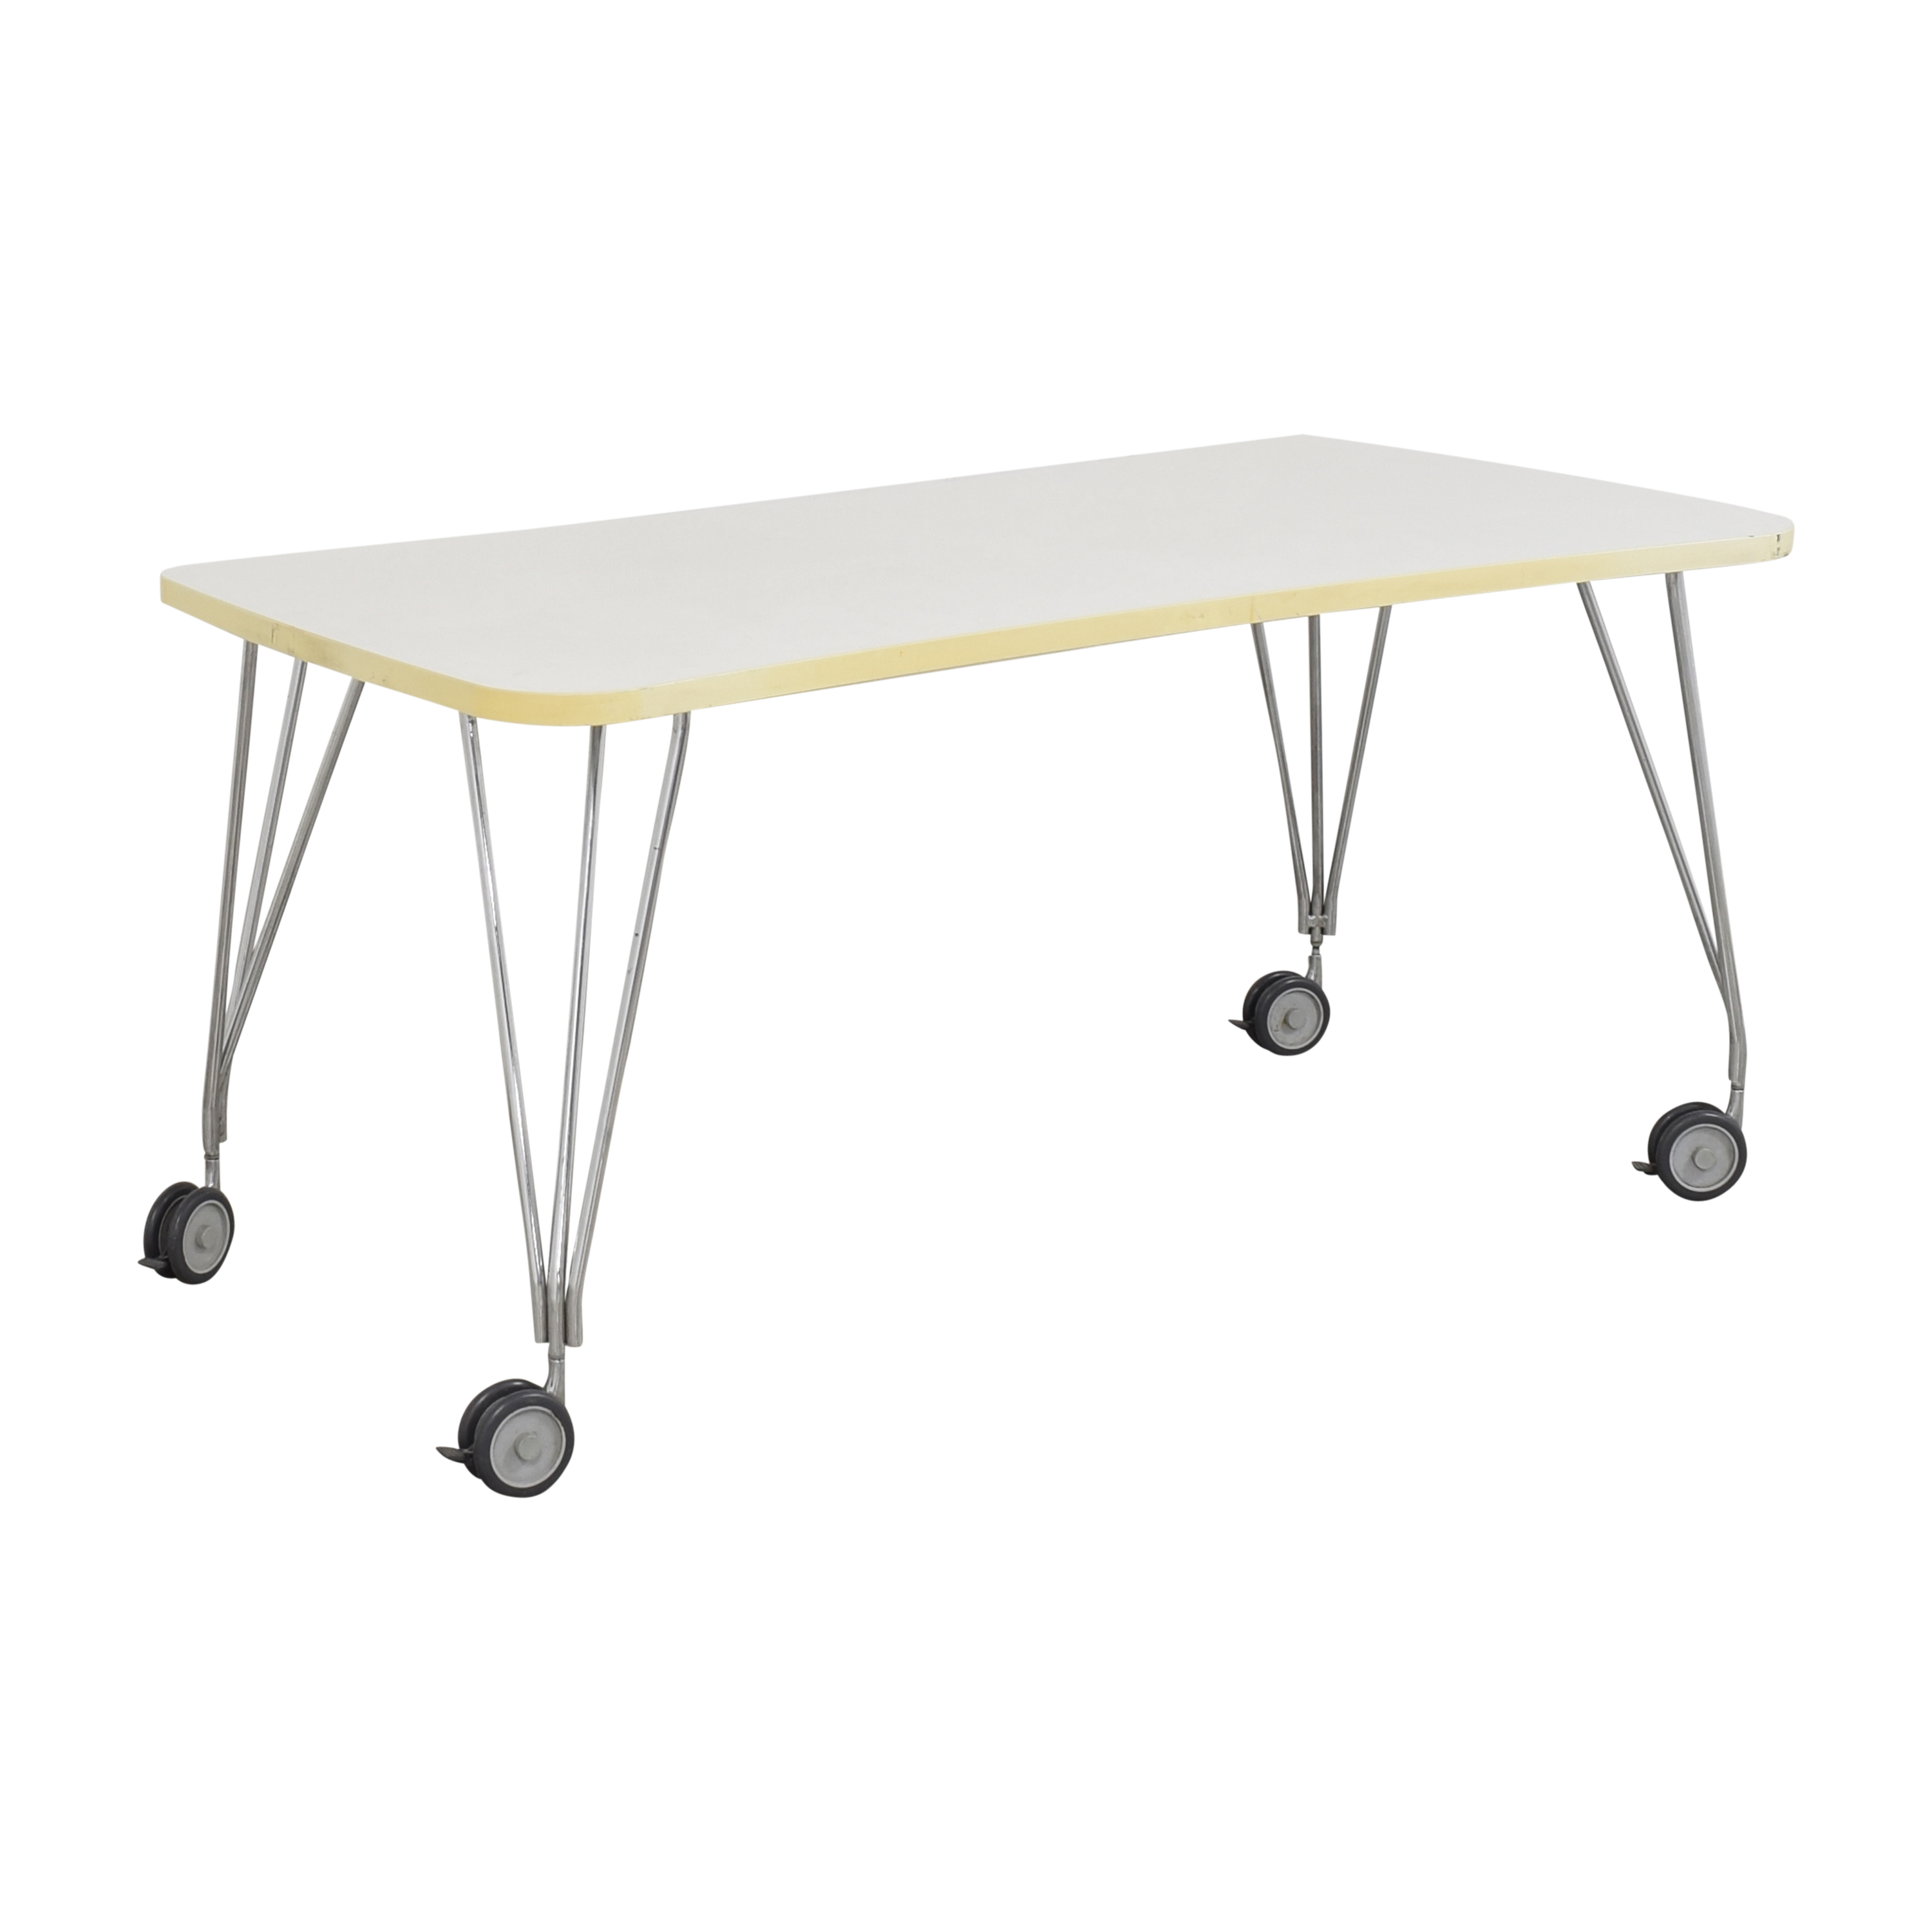 Kartell Kartell Max Table with Wheels dimensions